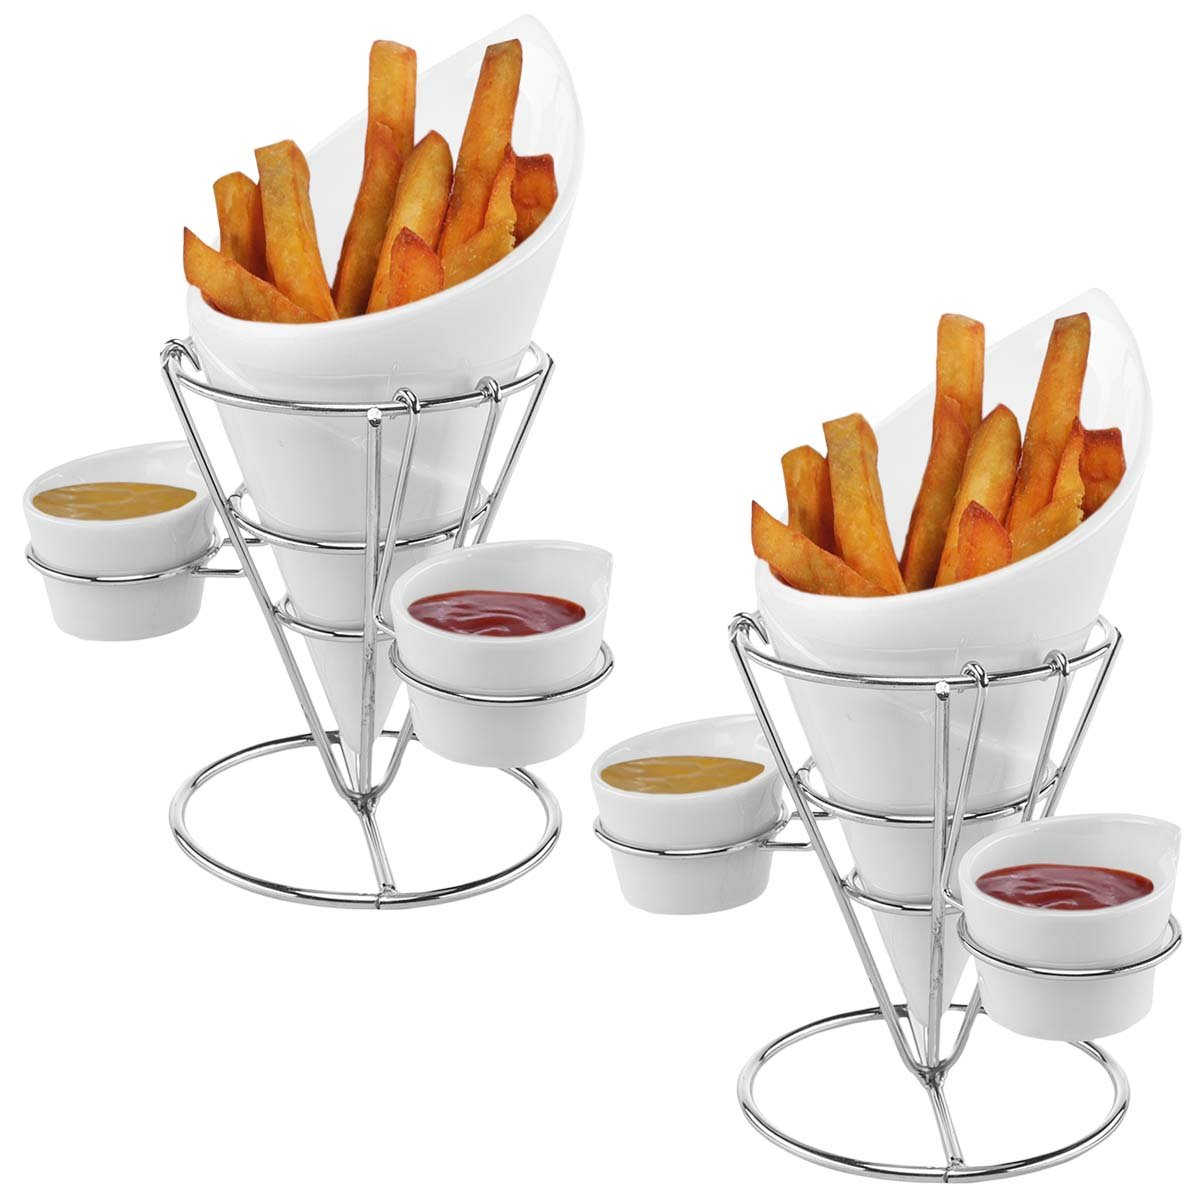 Gibson (2 Pack) Ceramic French Fry Holder & Ketchup Cups Set, Fries Cone Basket Stand & Sauce Serving by Gibson Home